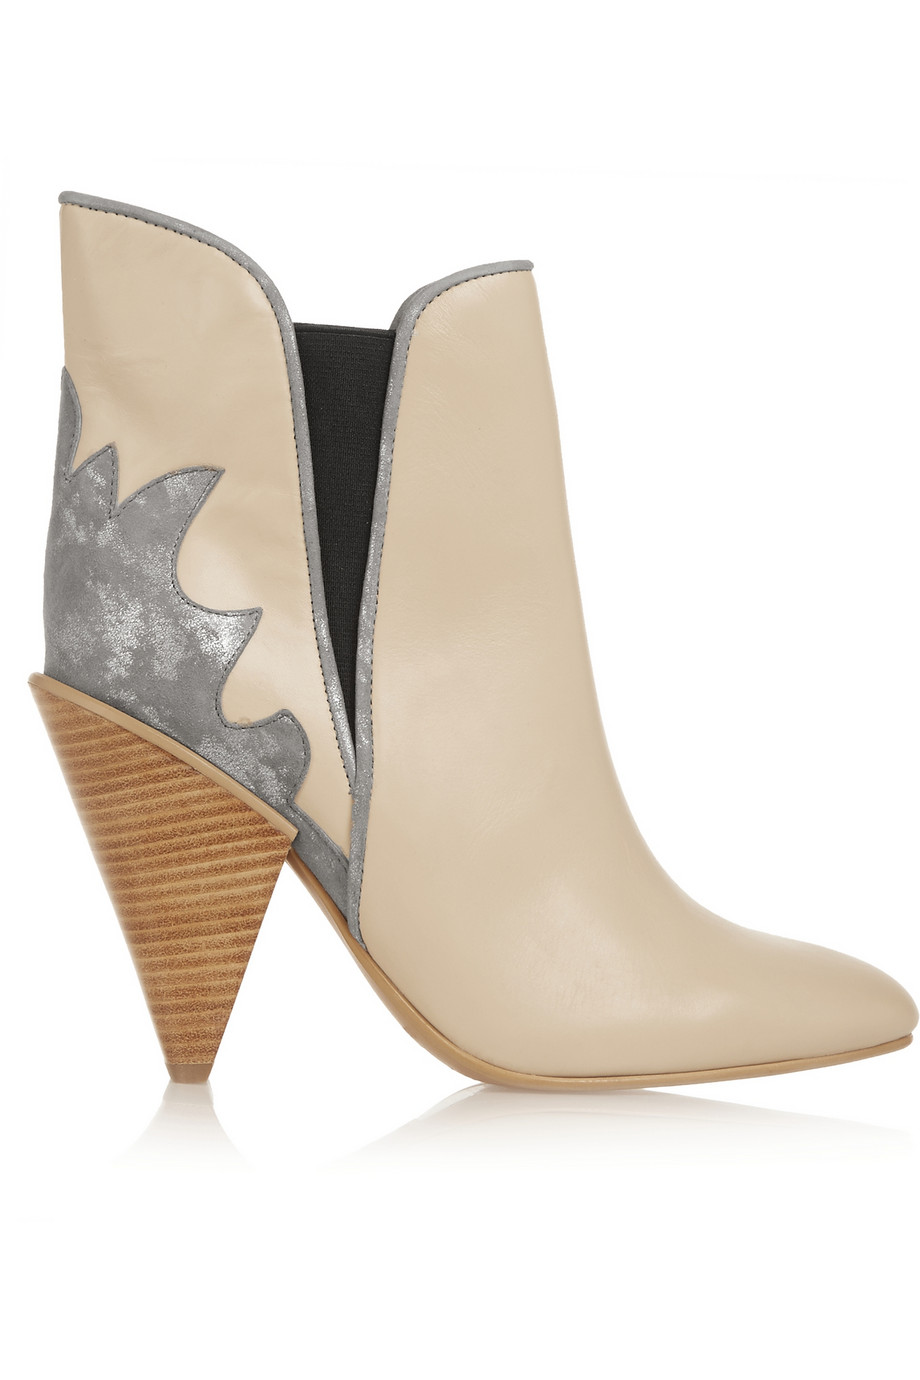 See by Chloe  boot - was $415, now $291